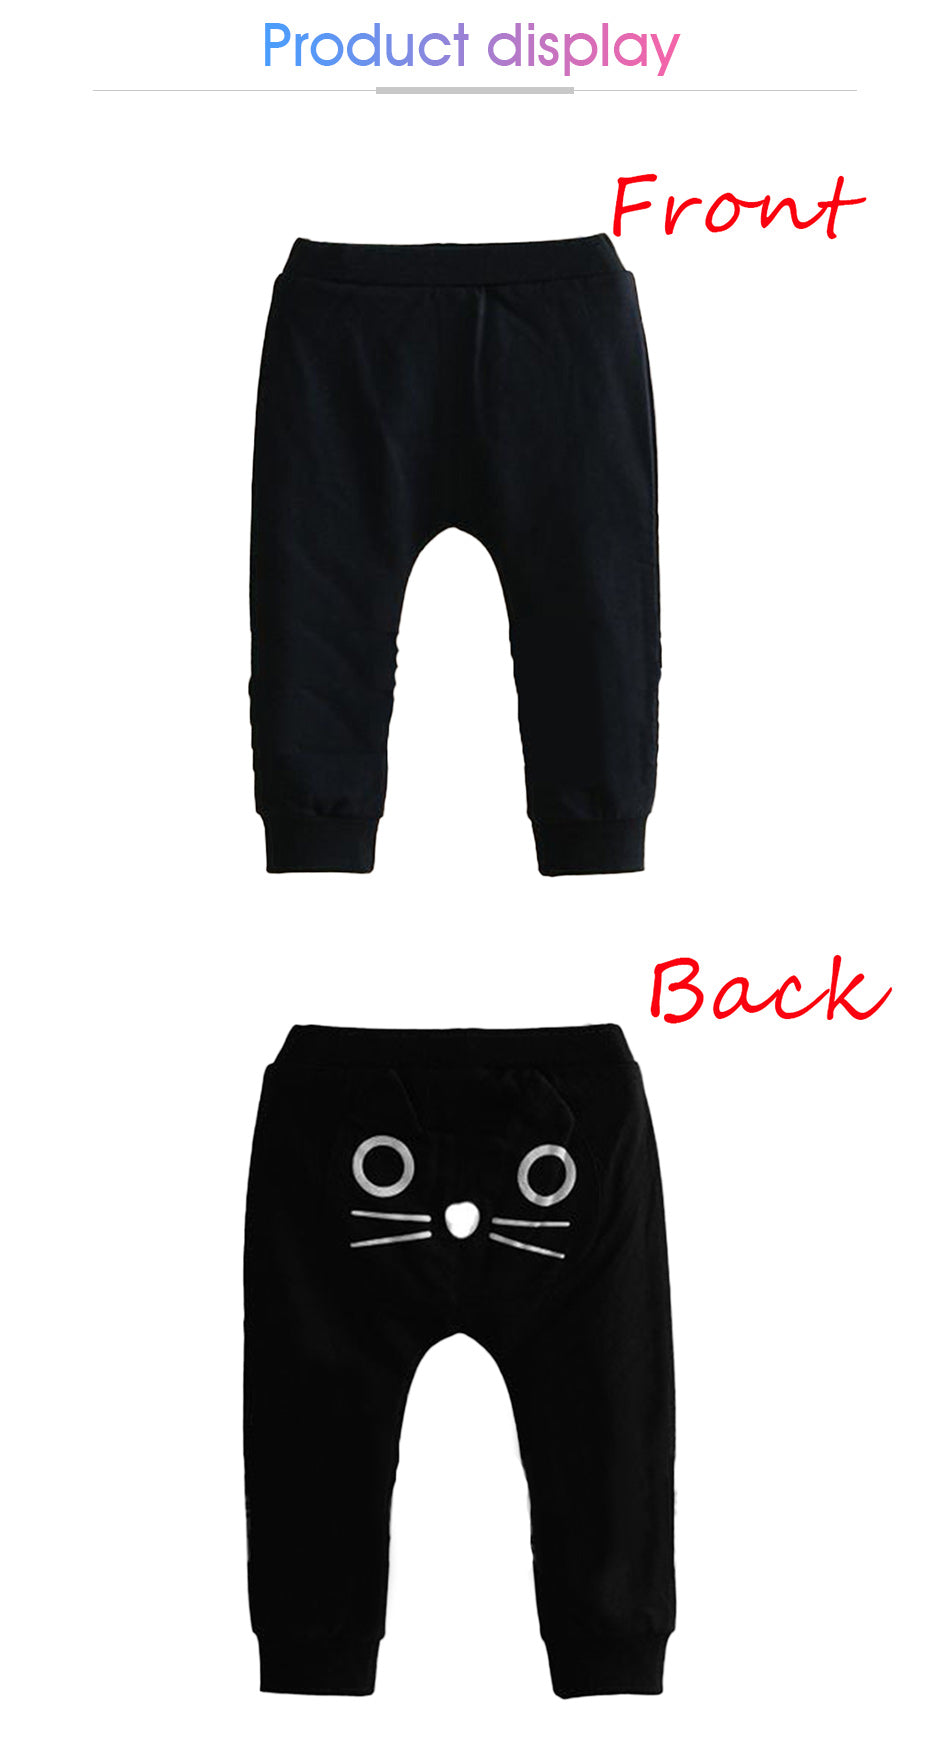 a0682bef3 Cute Cartoon Baby Pants Baby Boy Girls Harem Pant Ruffle Pant Causal ...